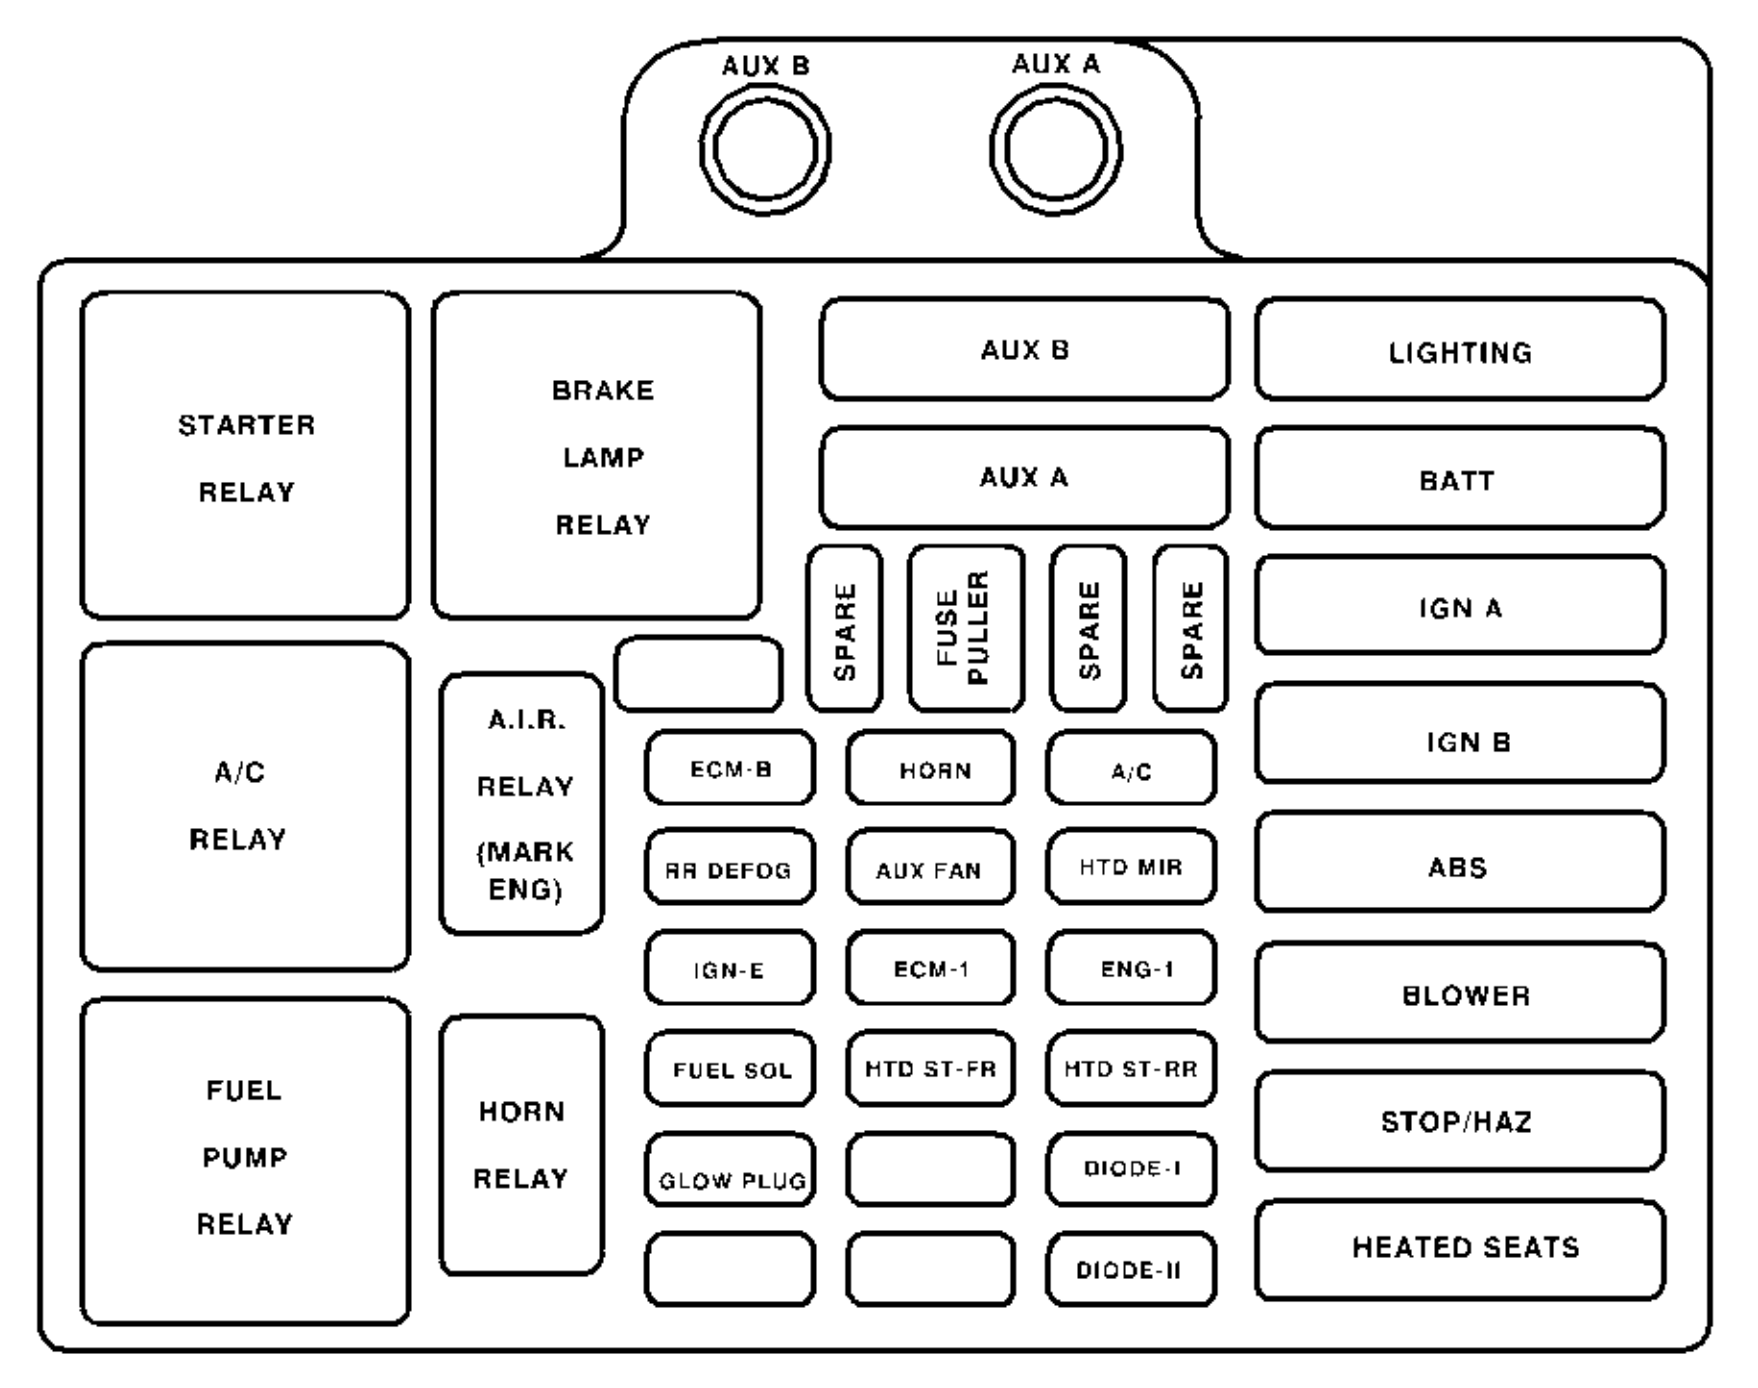 hight resolution of fuse box diagram furthermore 1970 chevy suburban 4x4 in addition 1993 chevrolet suburban 1500 moreover 1993 ford taurus fuse diagram